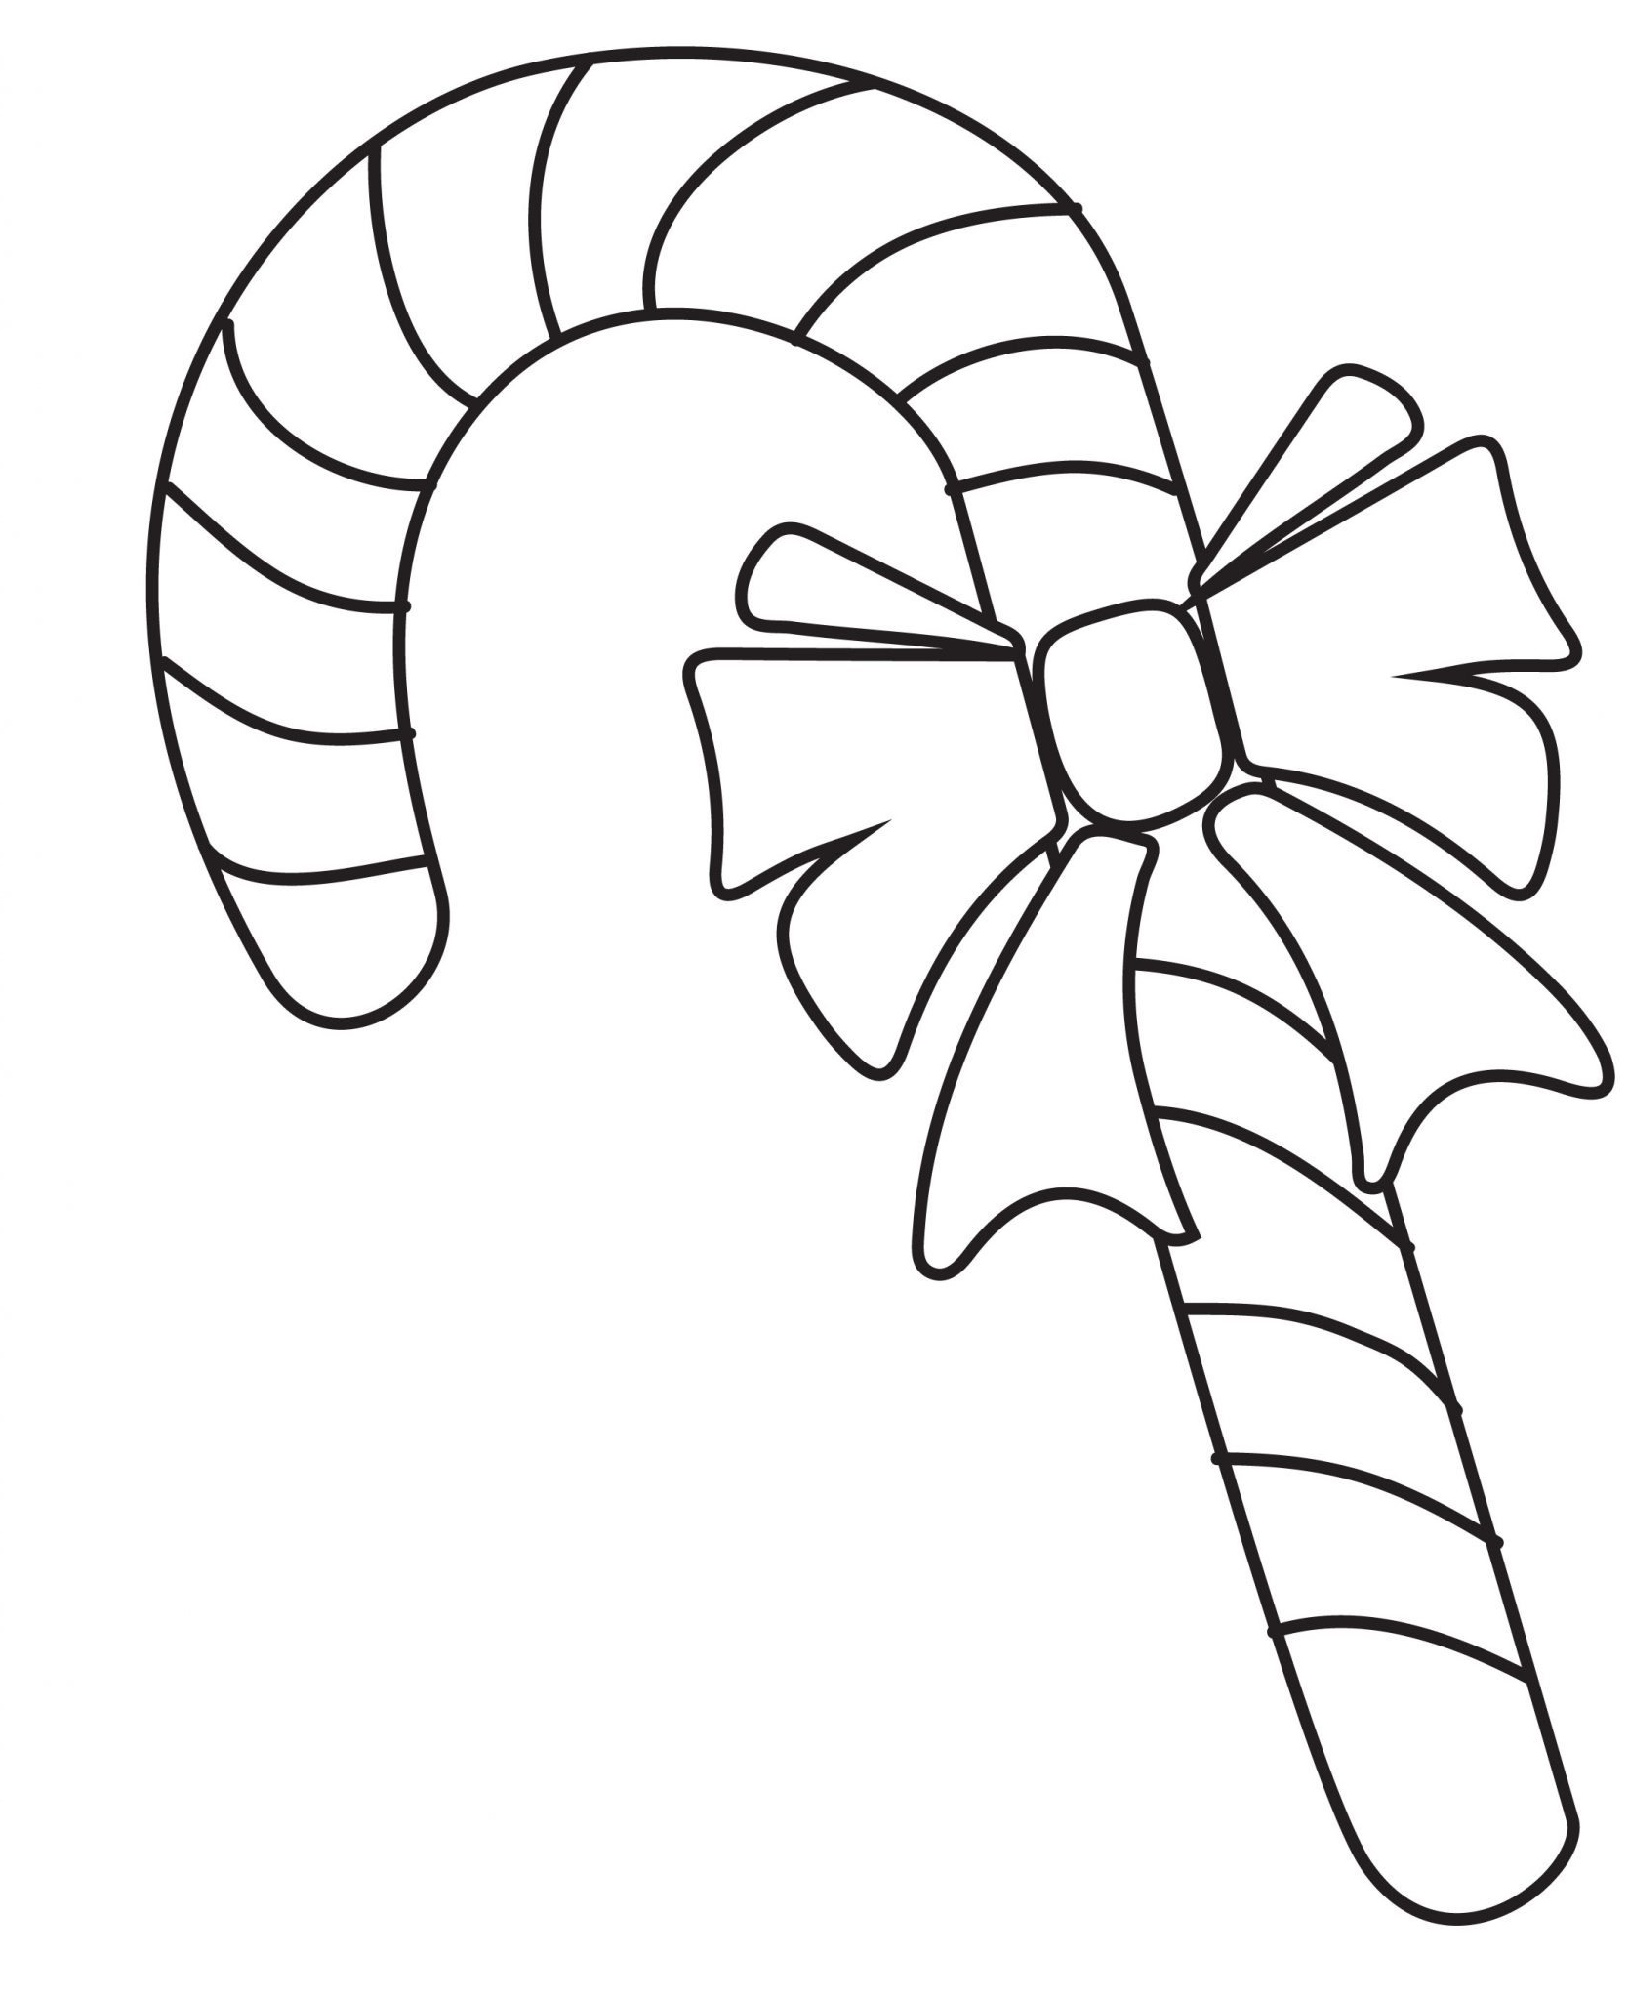 Candy Cane Coloring Page To Print